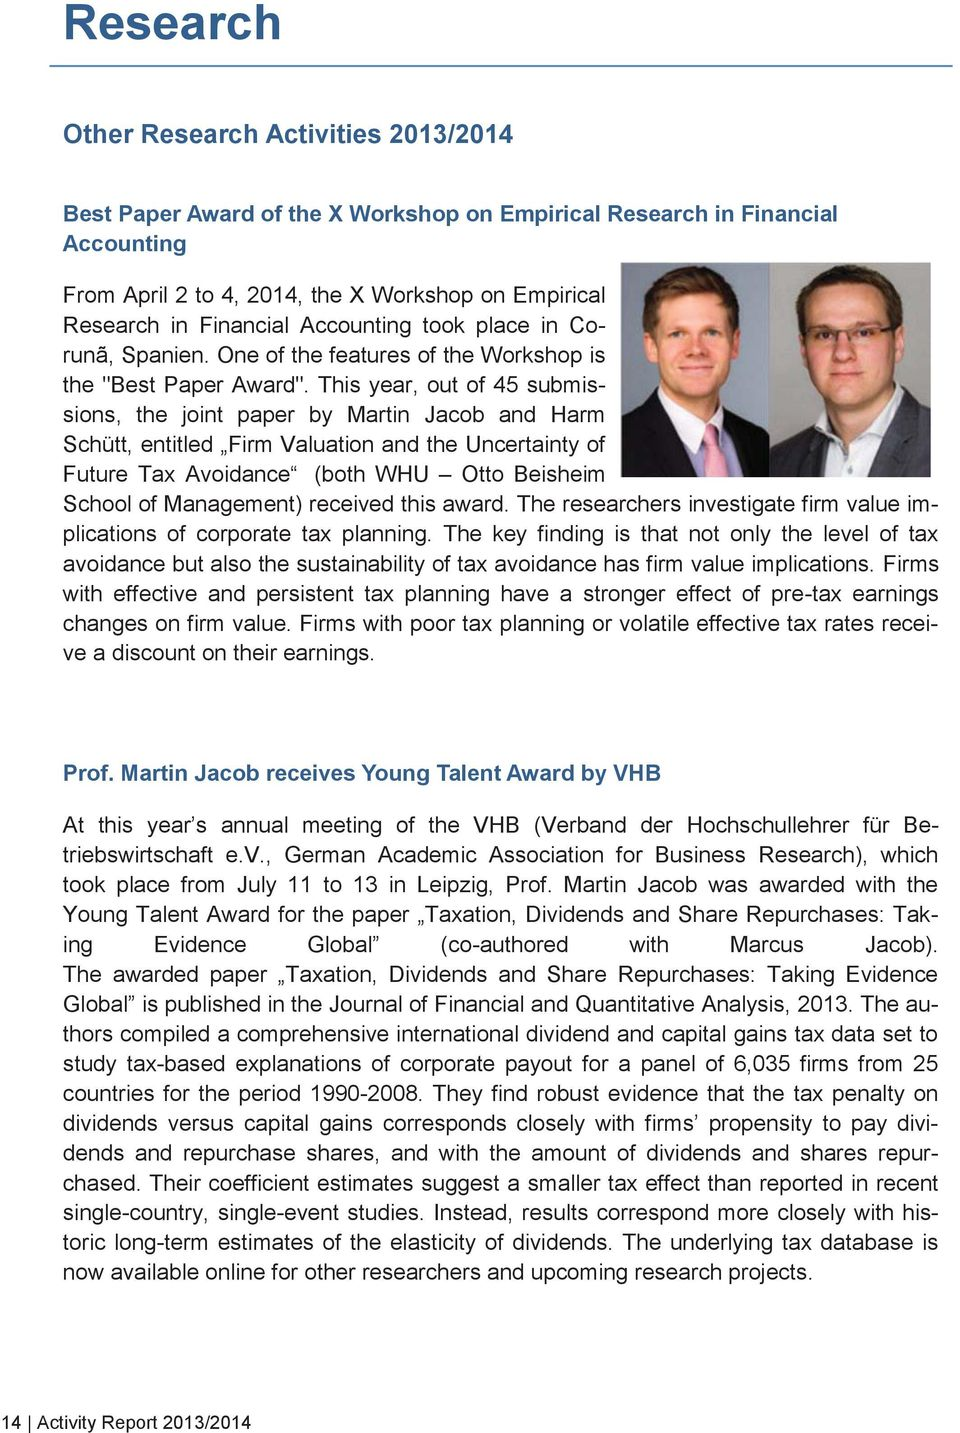 This year, out of 45 submissions, the joint paper by Martin Jacob and Harm Schütt, entitled Firm Valuation and the Uncertainty of Future Tax Avoidance (both WHU Otto Beisheim School of Management)